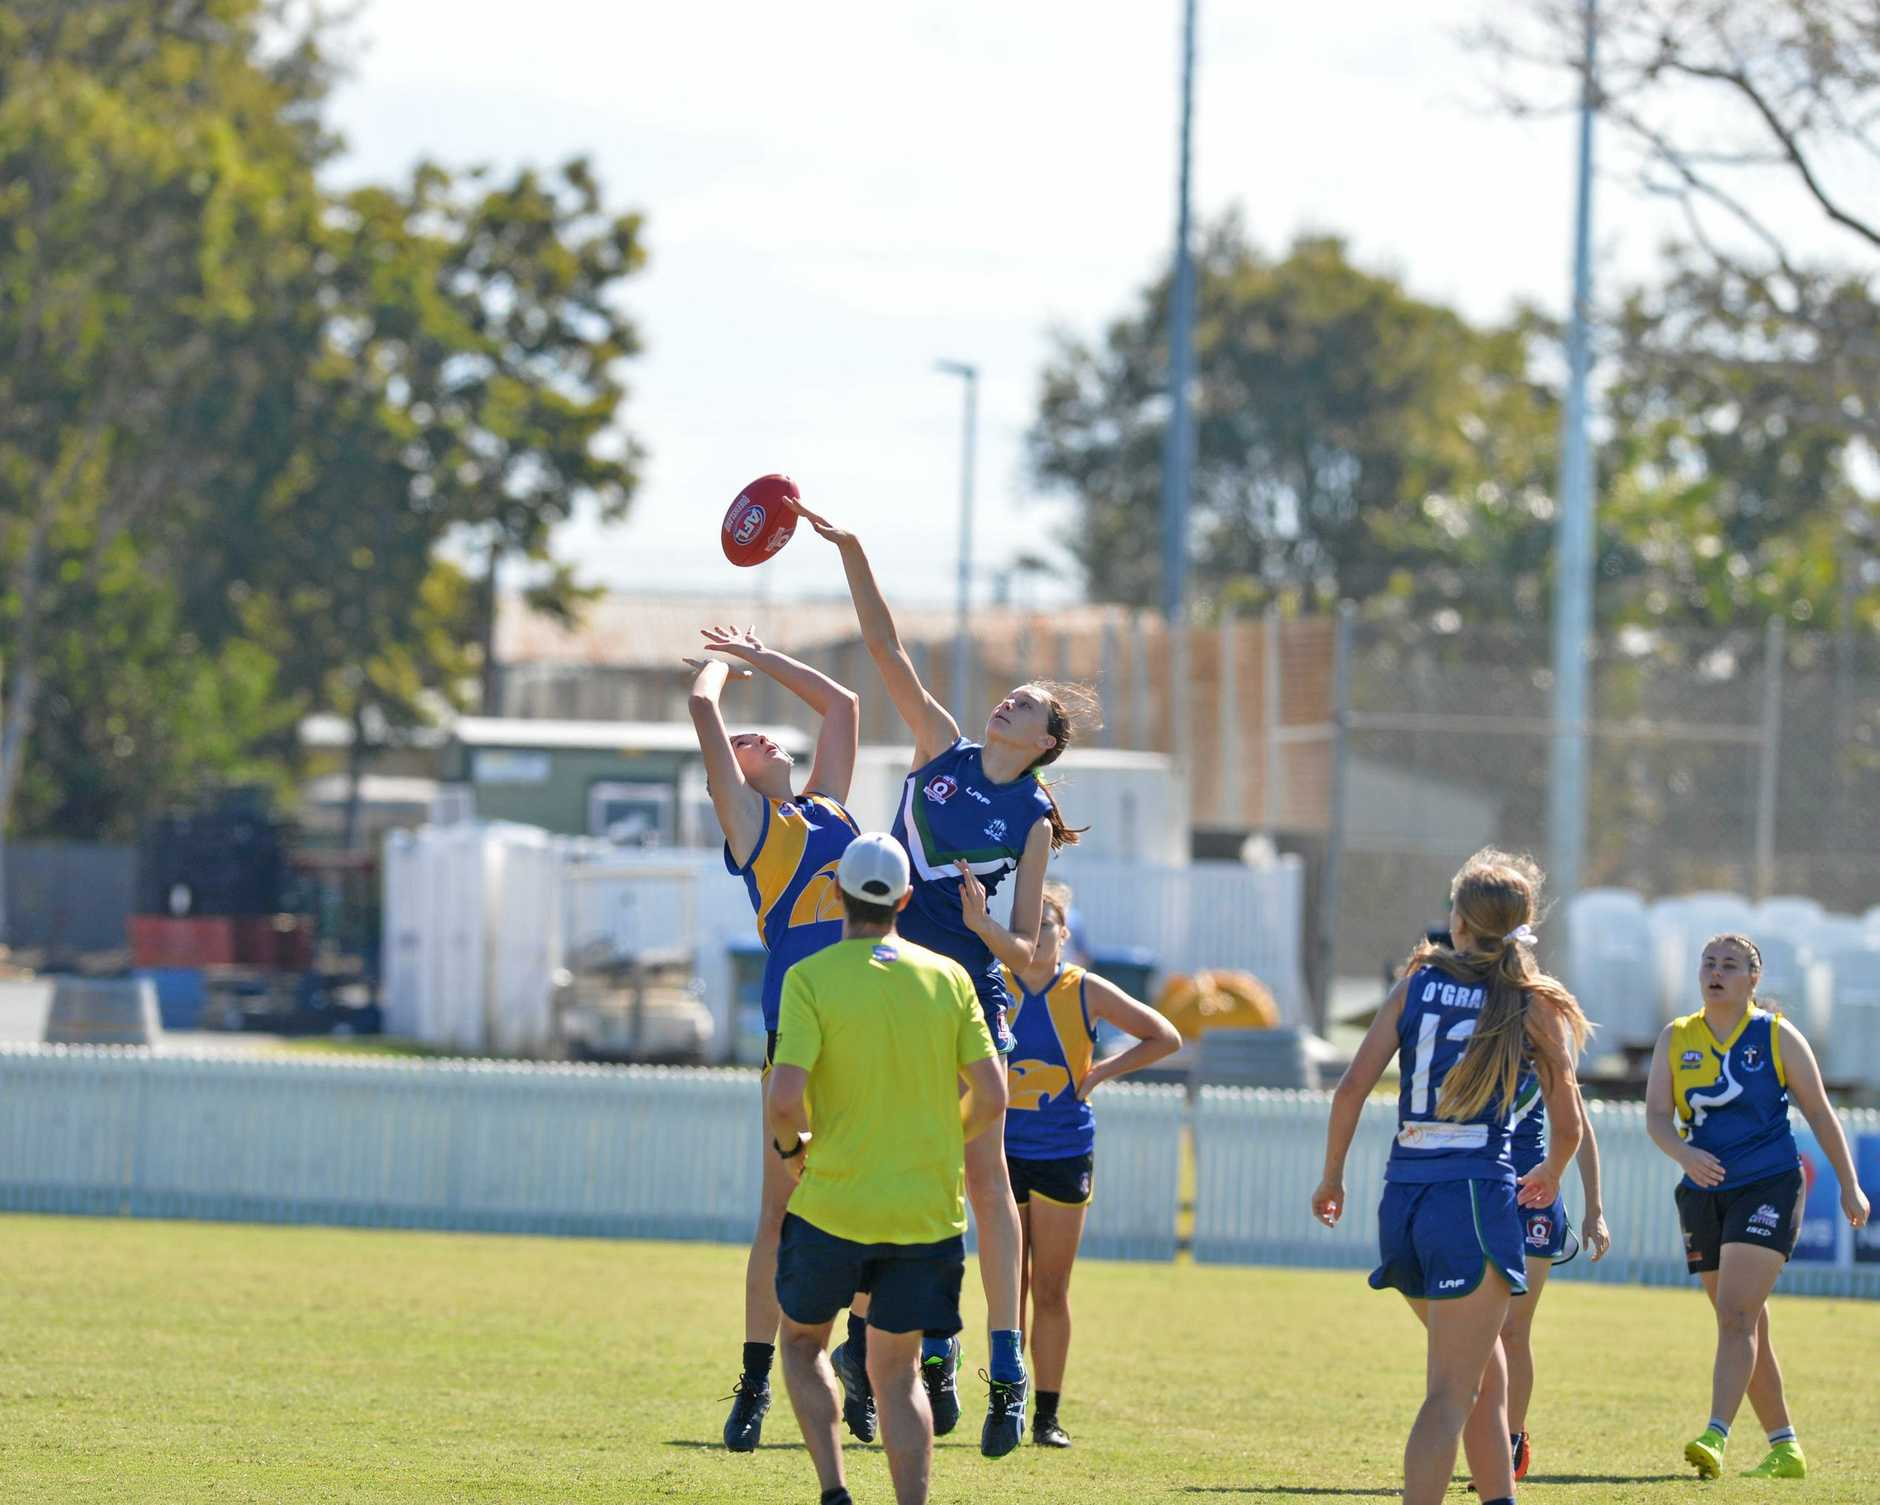 The Cathedral College 2.8 (20) defeated Holy Spirit College 1.3 (9) in the NQ Championship final at the AFL Queensland Schools Cup North Queensland Championships at Harrup Park on Wednesday, August 14.